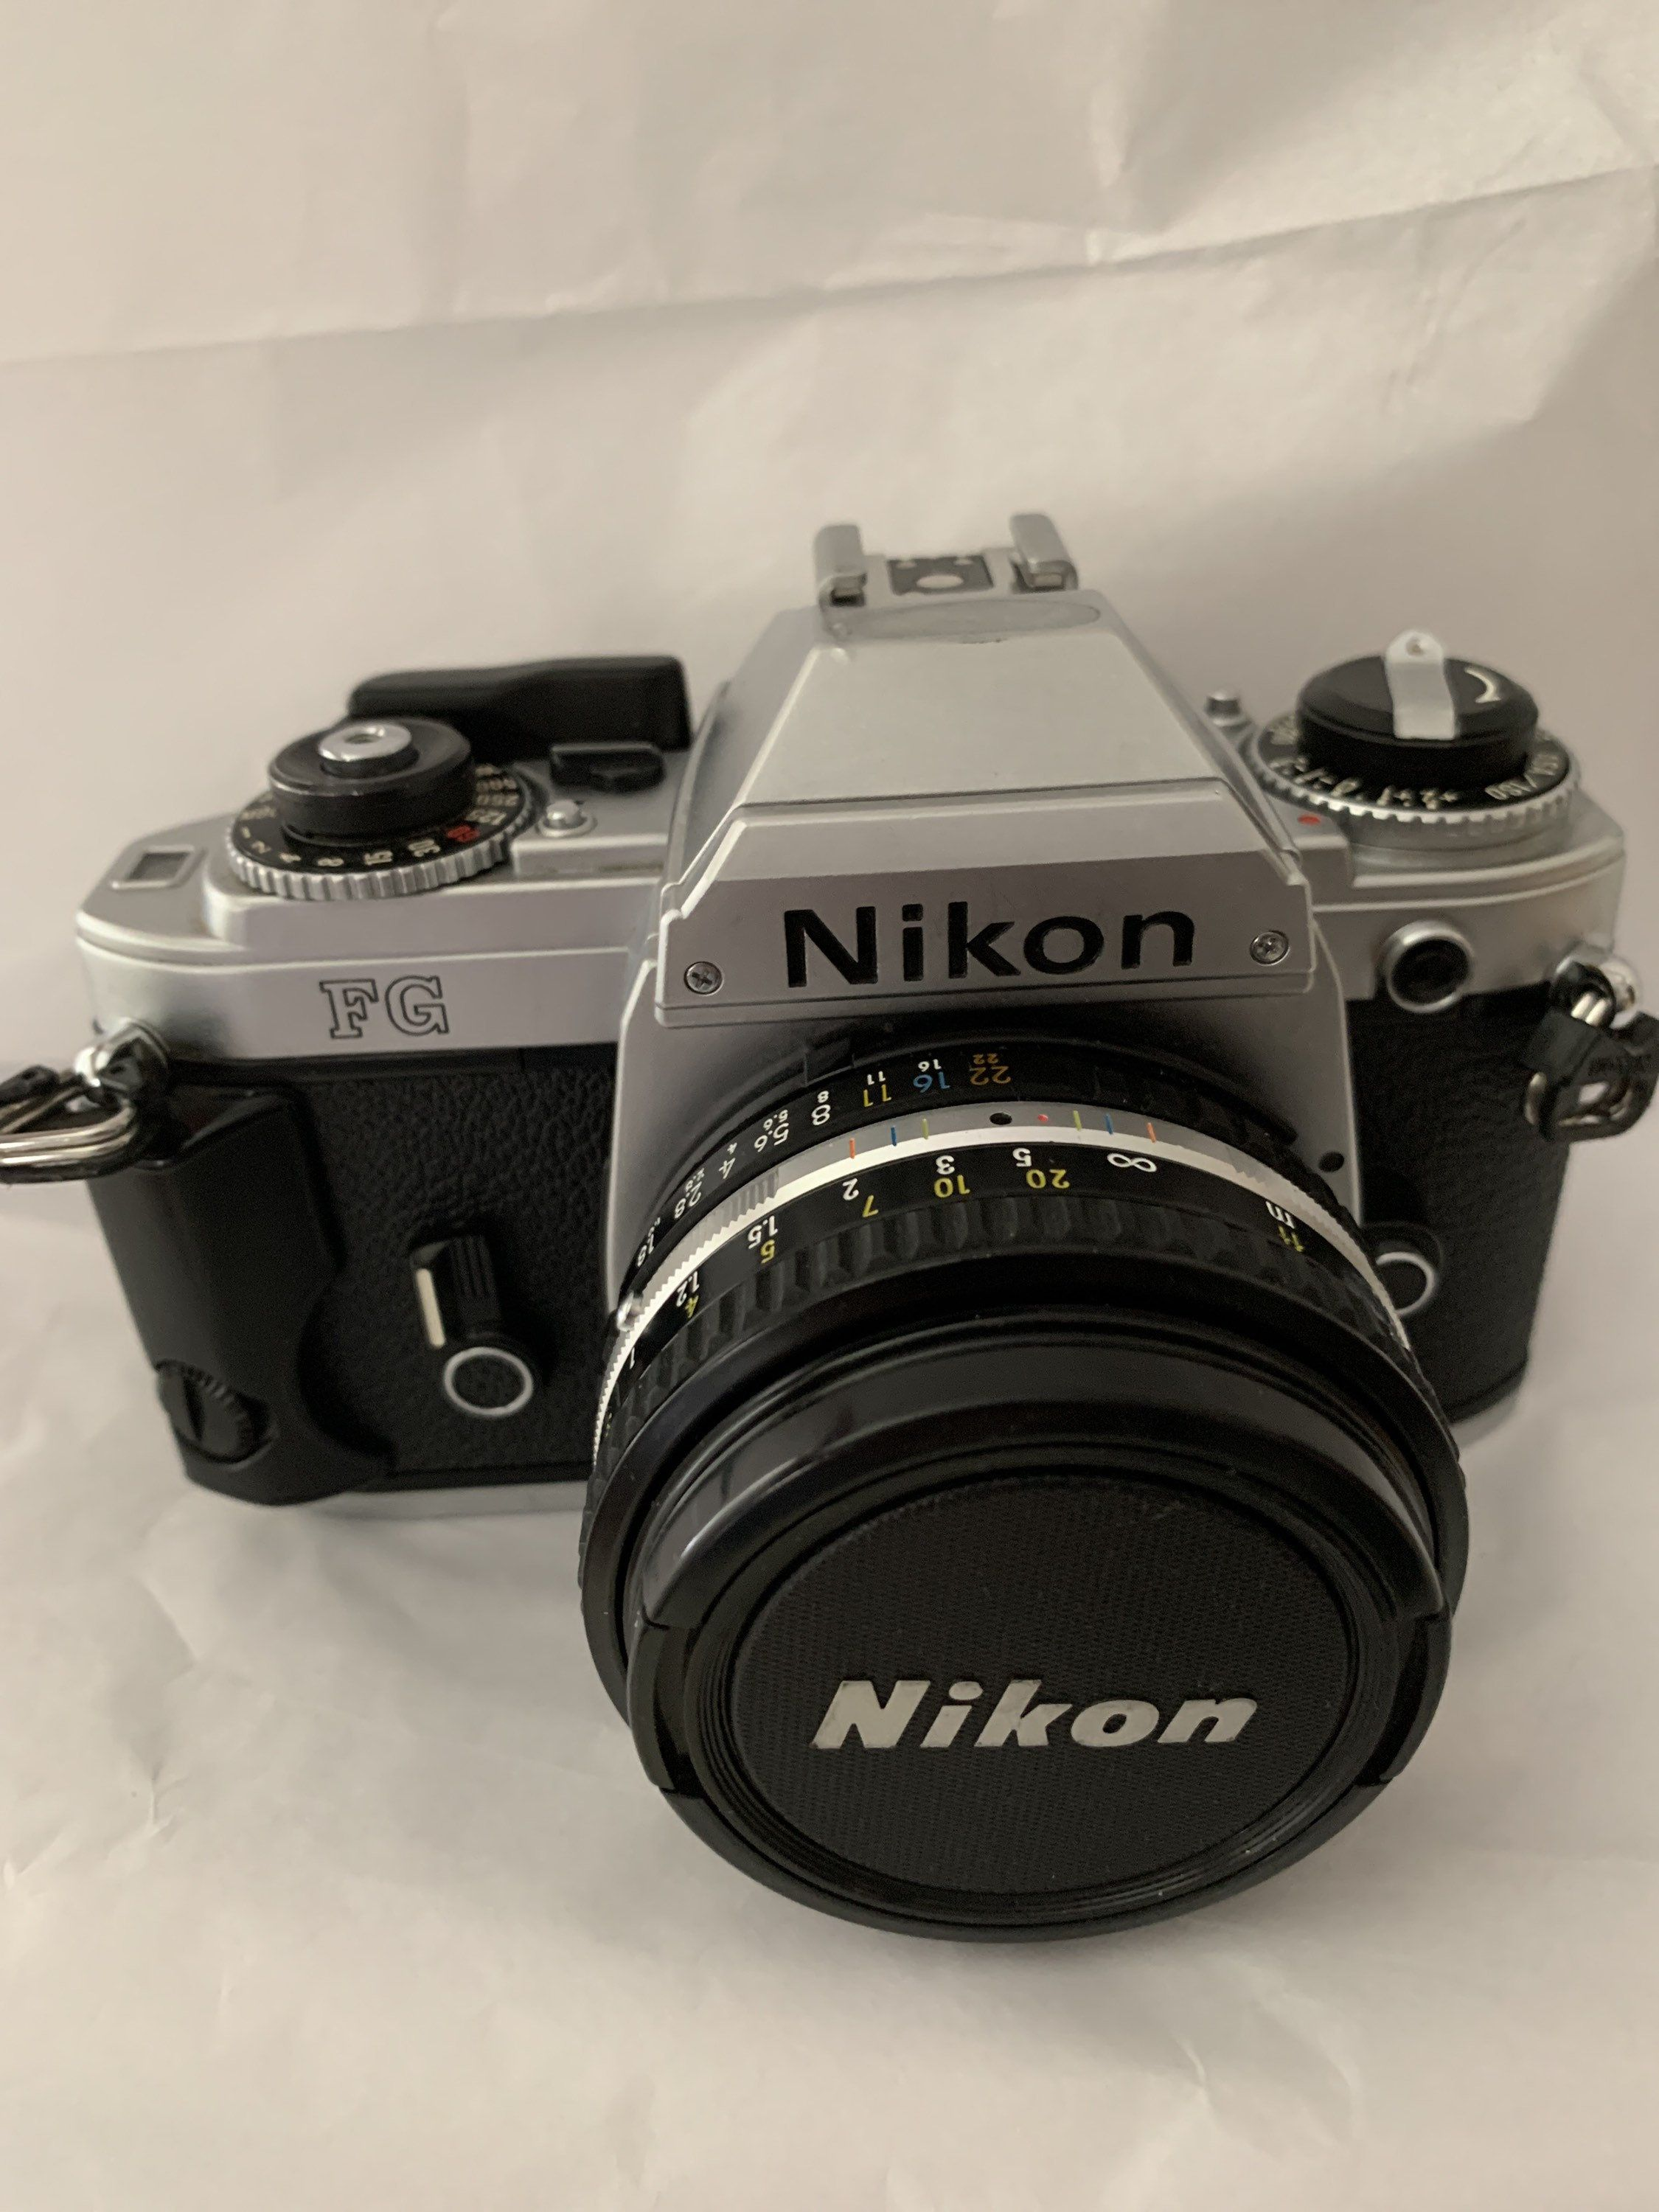 Excited to share this item from my #etsy shop: Nikon FG Film Camera with Nikon 50mm f/1.8 Lens